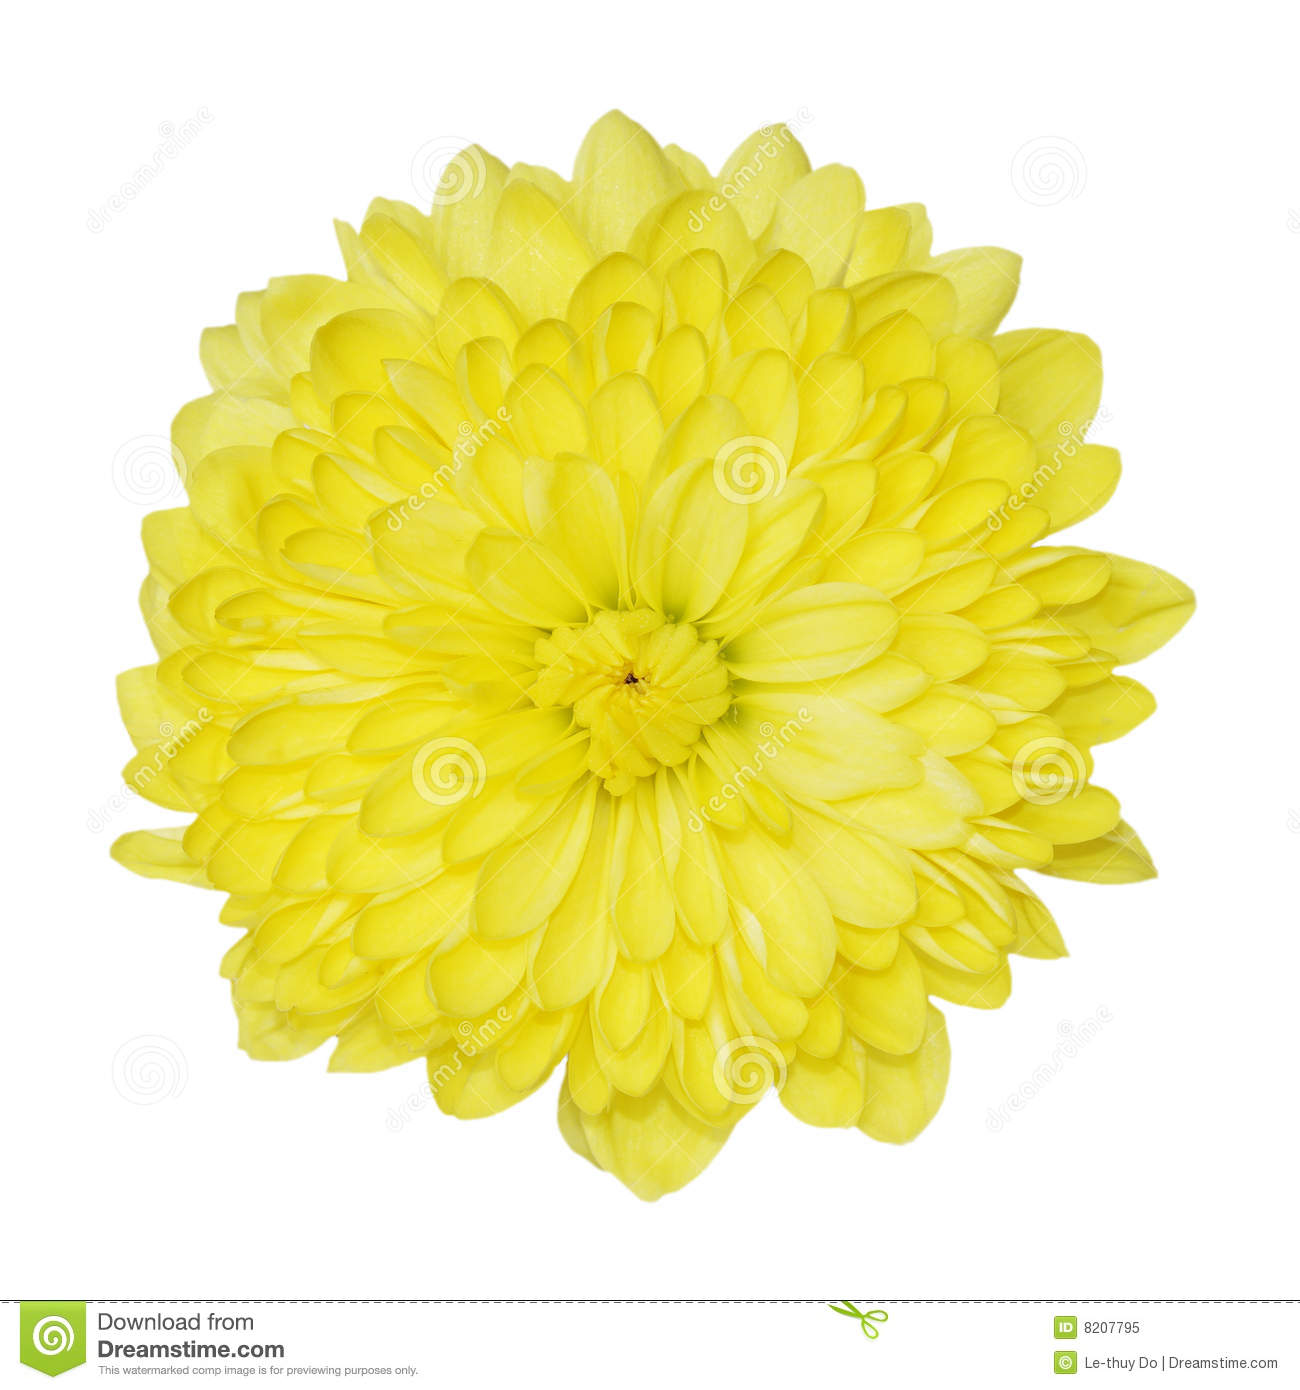 Yellow Chrysanthemum Royalty Free Stock Photo - Image: 8207795 Yellow Chrysanthemum Flower